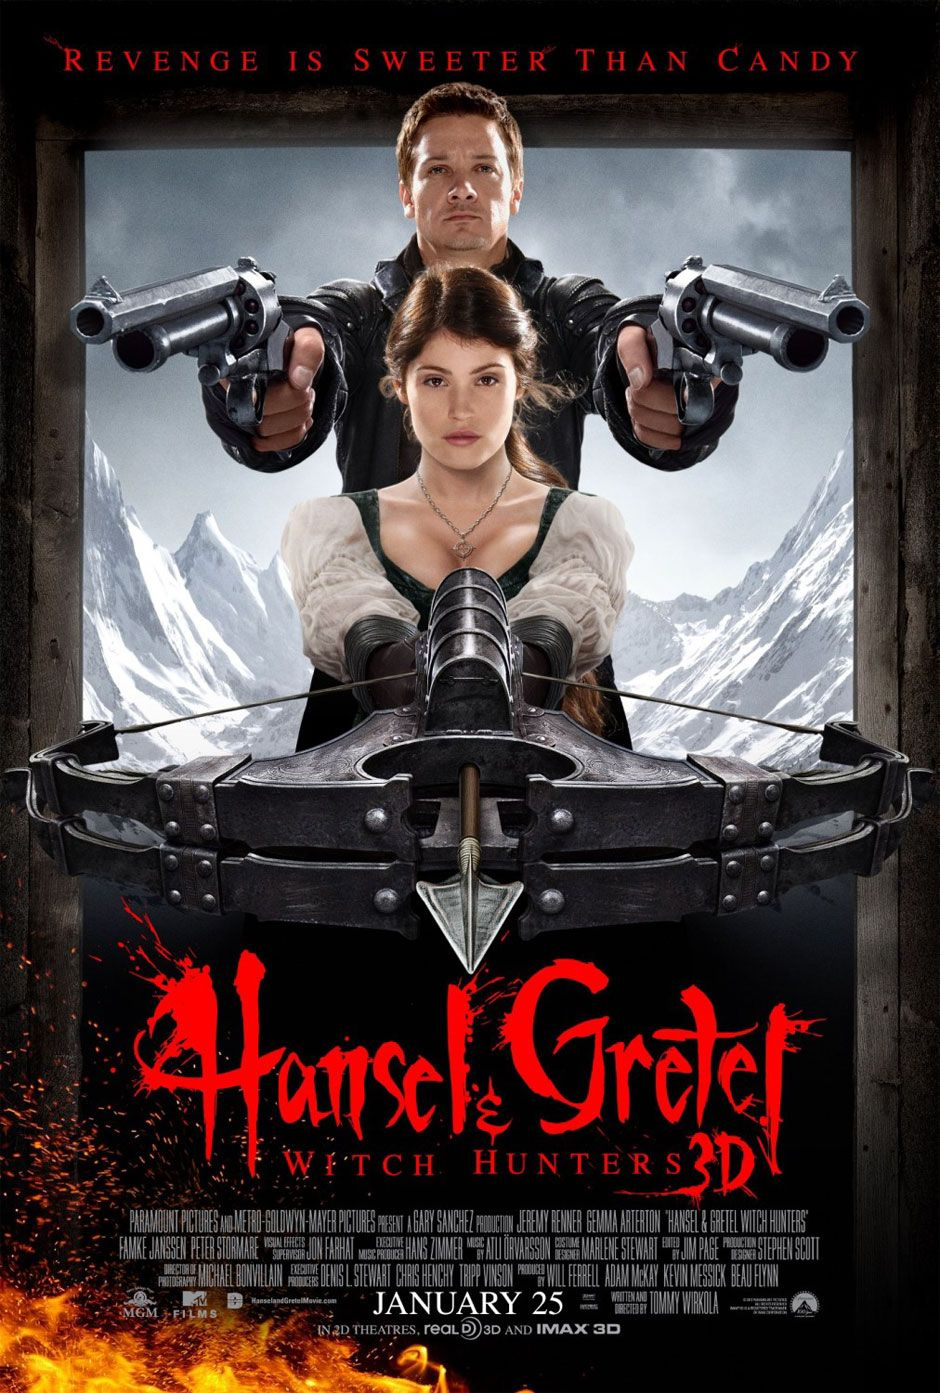 Hansel Gretel Witch Hunters 2013 Glorious Movie Posters In 2019 Hunter Movie Movie Posters Internet Movies